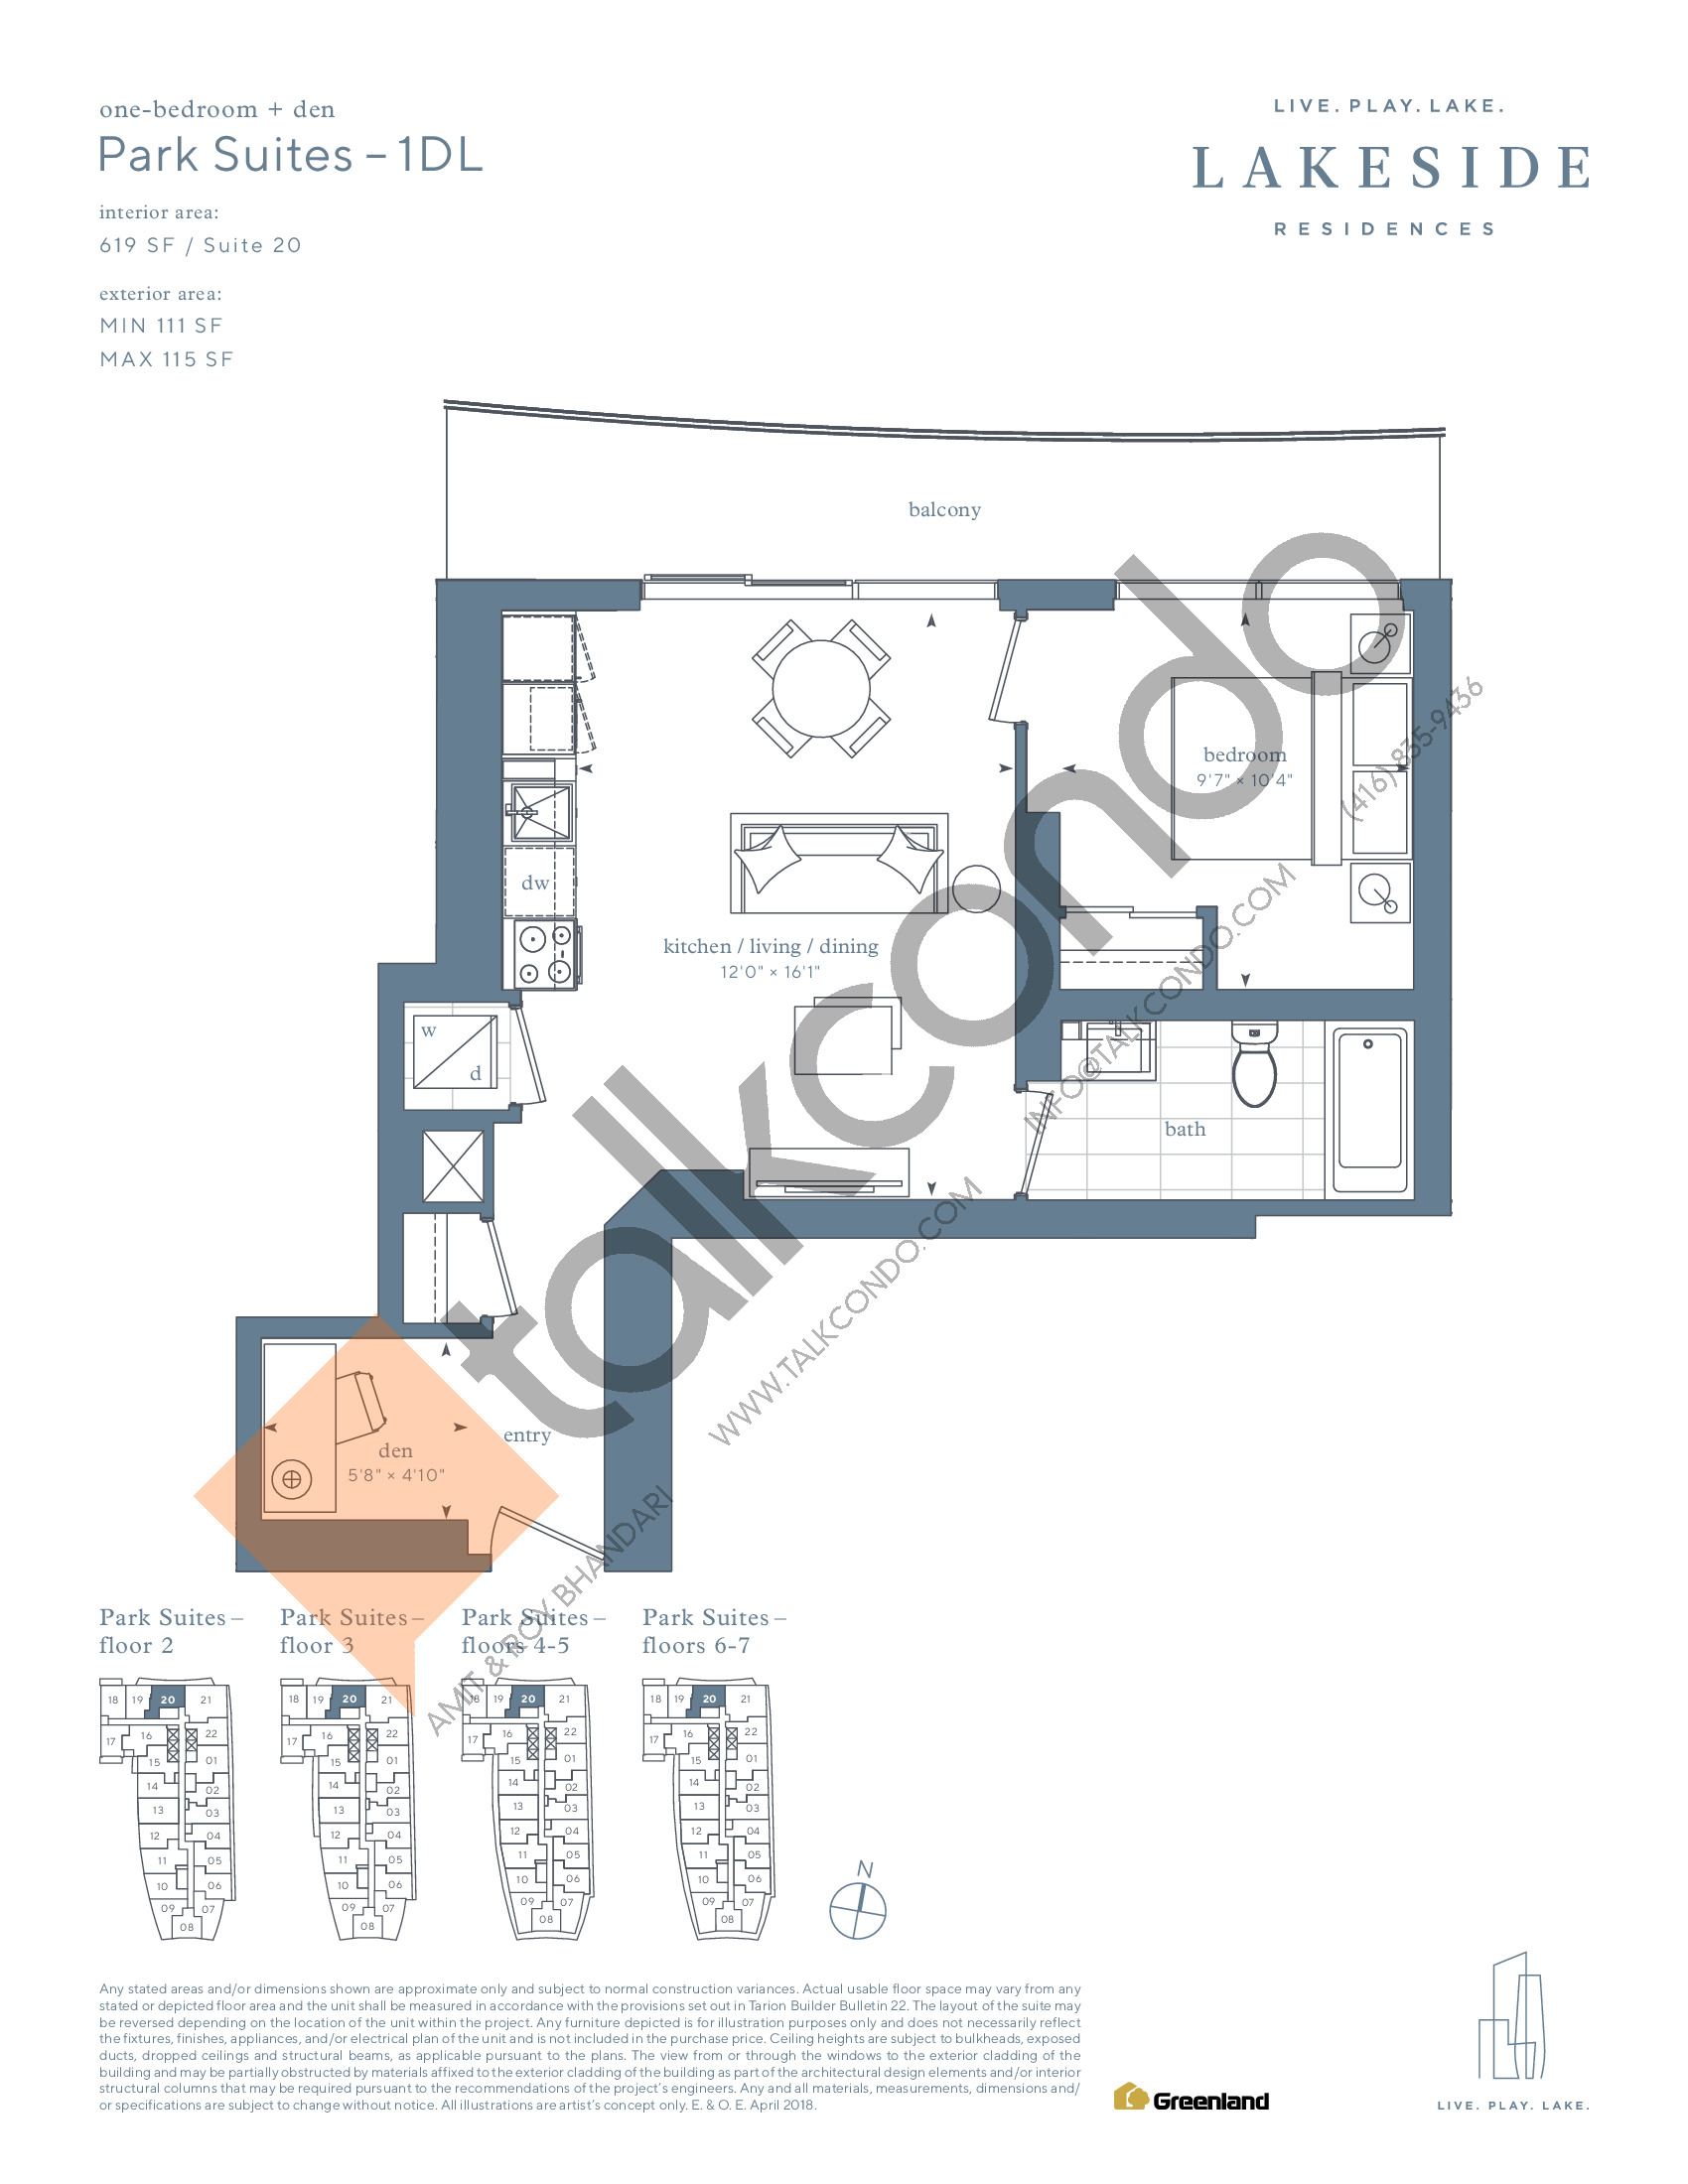 Park Suites - 1DL Floor Plan at Lakeside Residences - 619 sq.ft